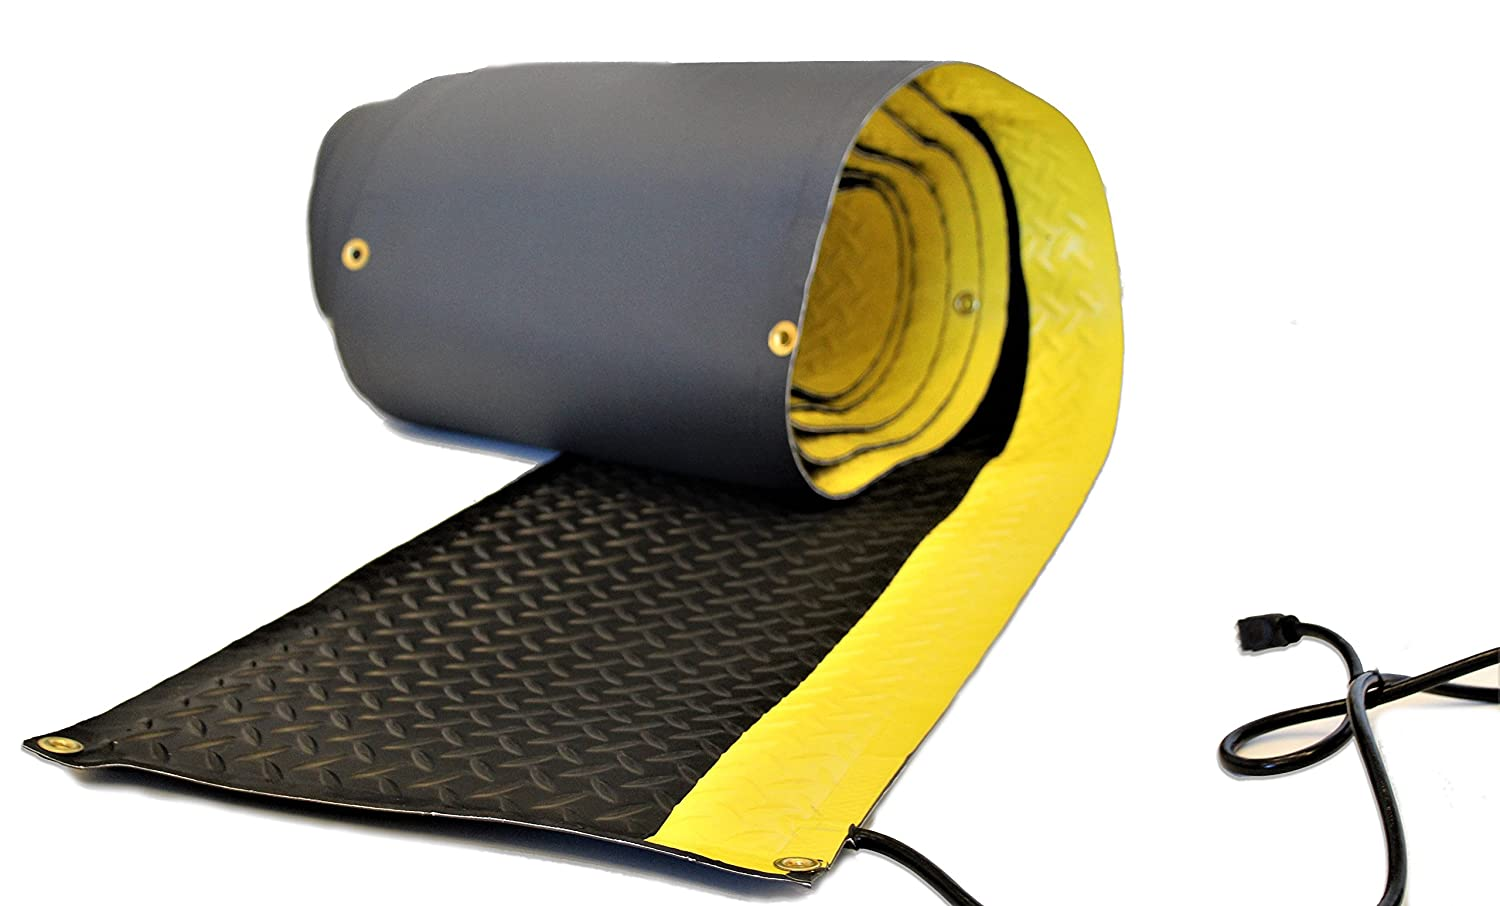 """RHS Heated Walkway, non-slip snow melting mat, diamond shape design for extra traction, safety bright yellow edge, color black, Helps Prevent Shoveling your walkway, Buy Factory Direct (15""""W x 10'L)"""